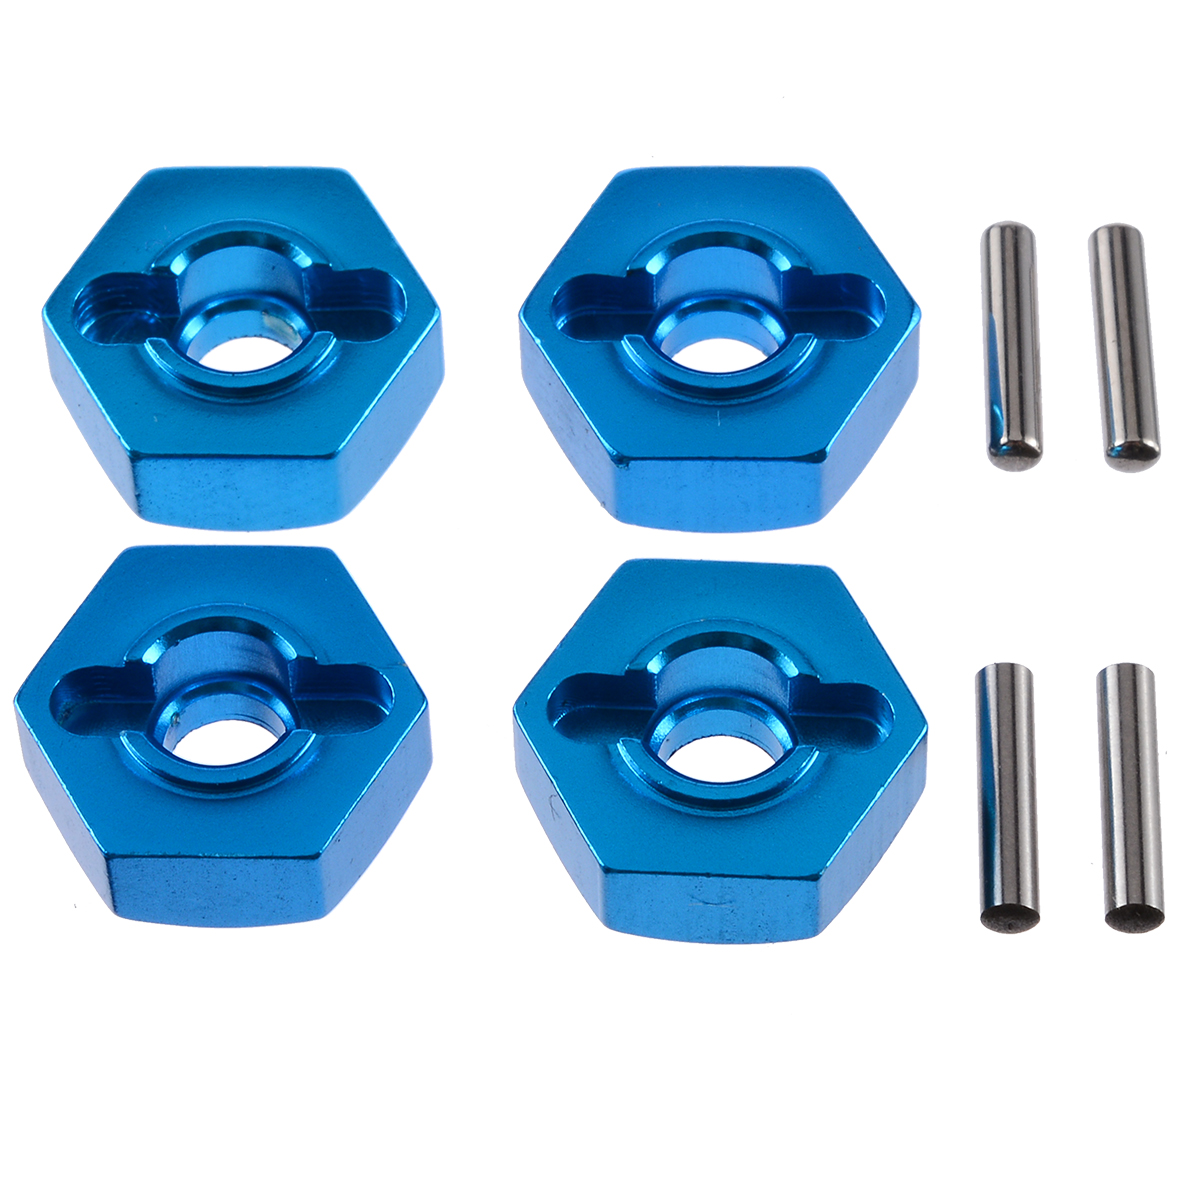 4Pcs 12mm Aluminum Wheel Hex Nut With Pins Drive Hubs 4P HSP 102042 1/10 Upgrade Parts For 4WD RC Car Himoto(China)